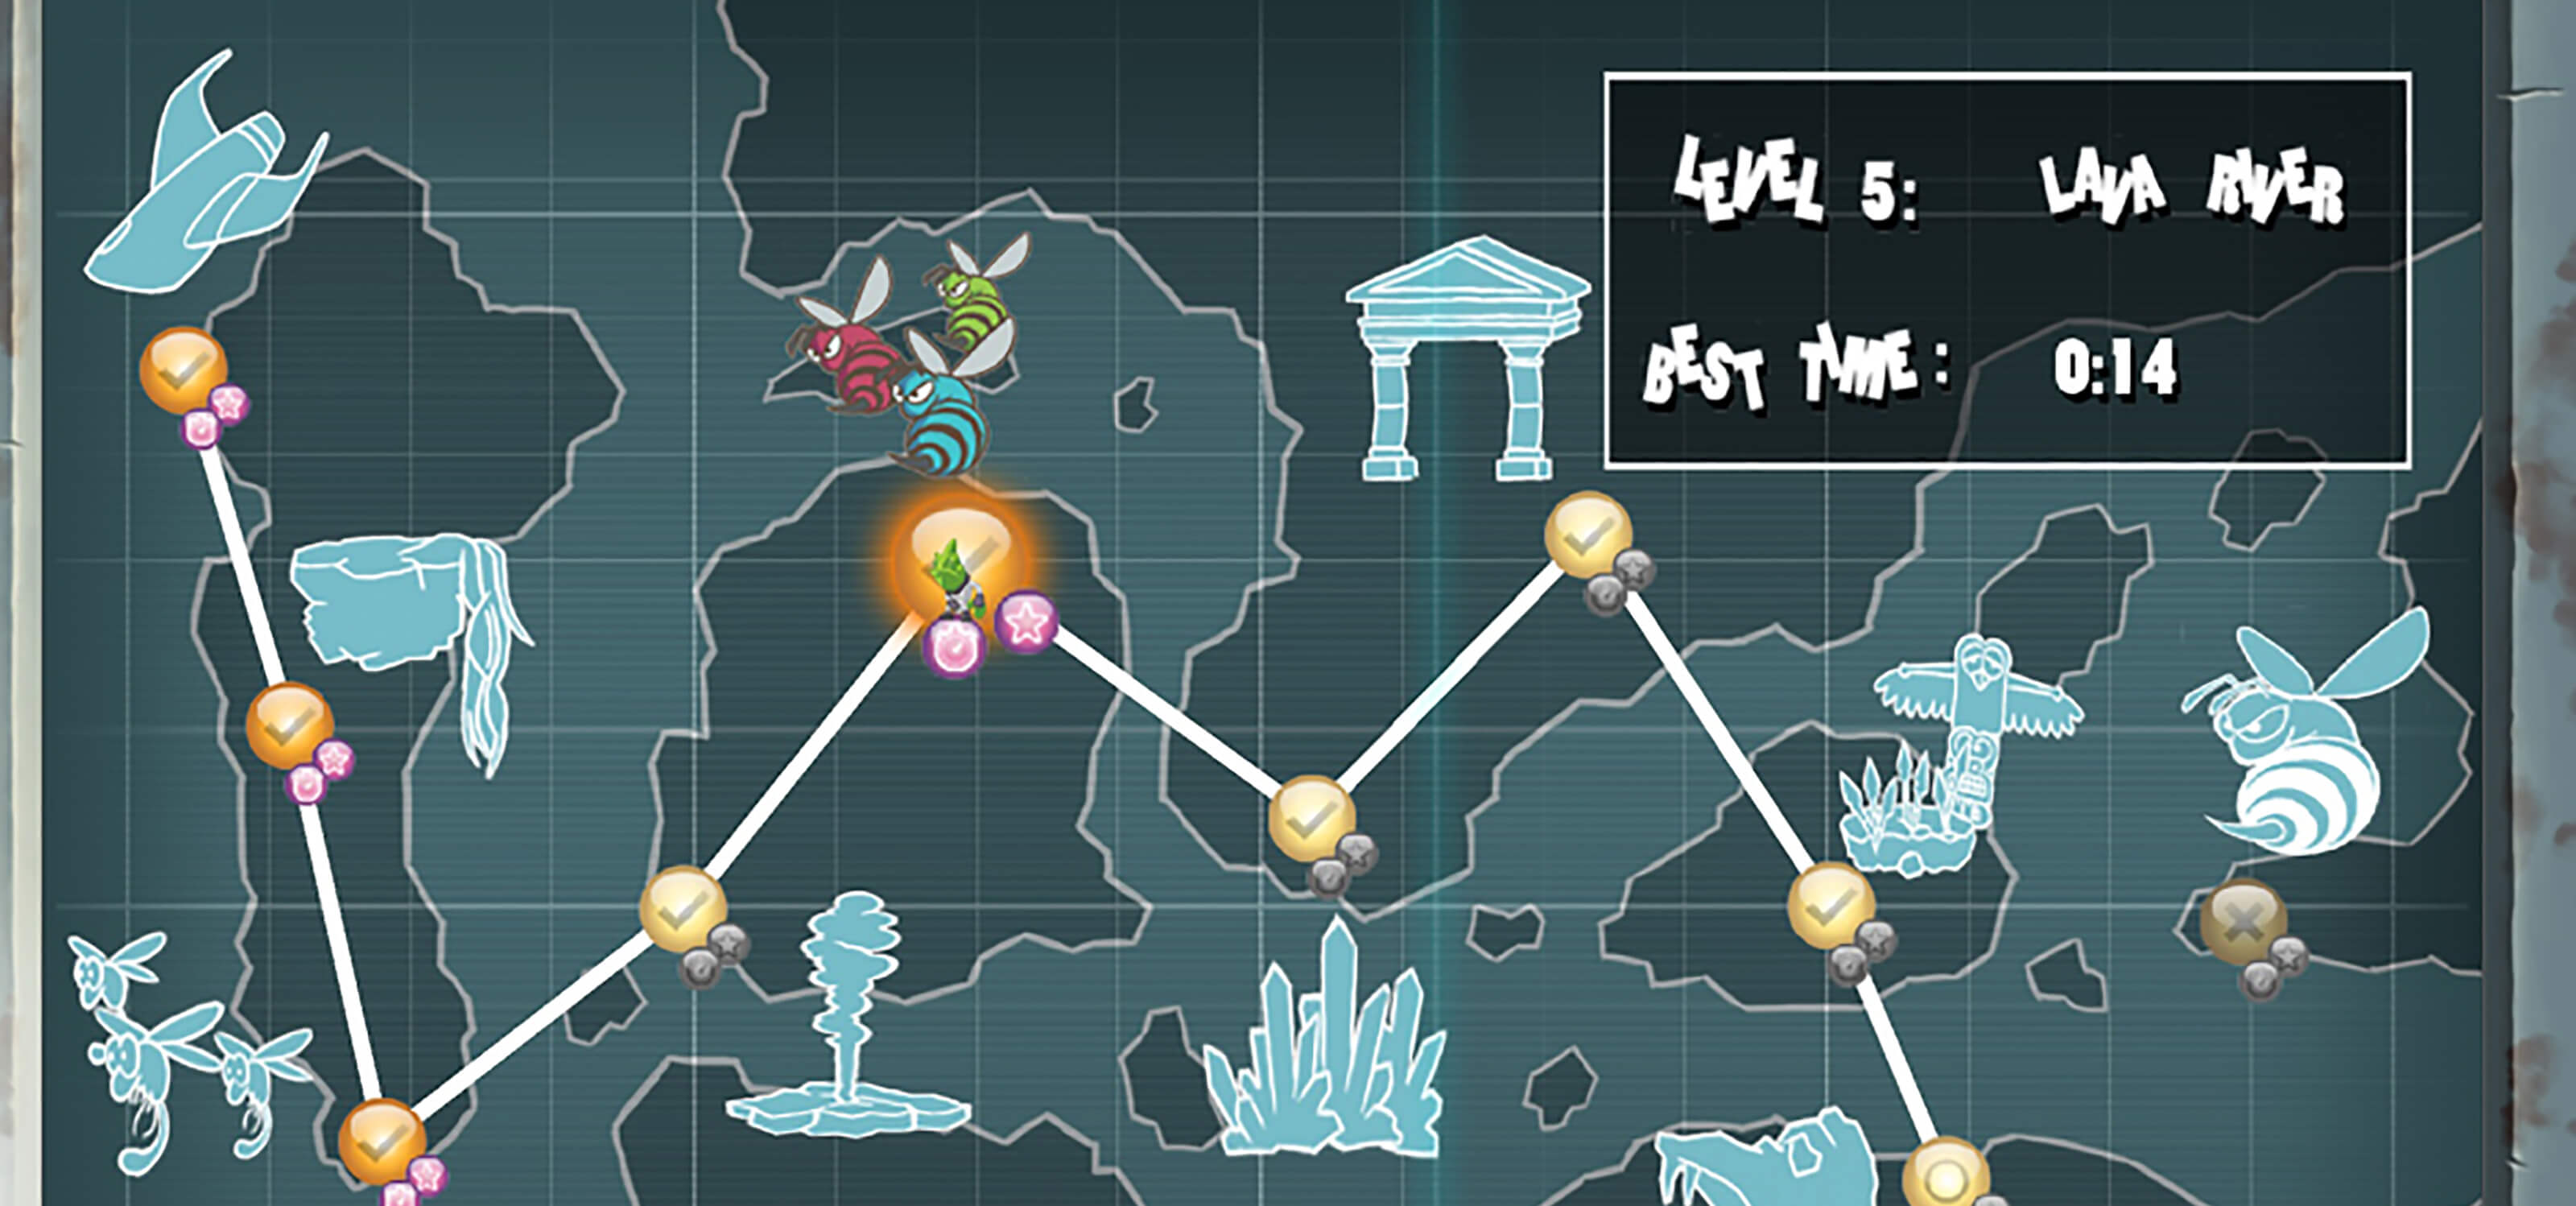 Twisted's overworld map, full of icons for different levels